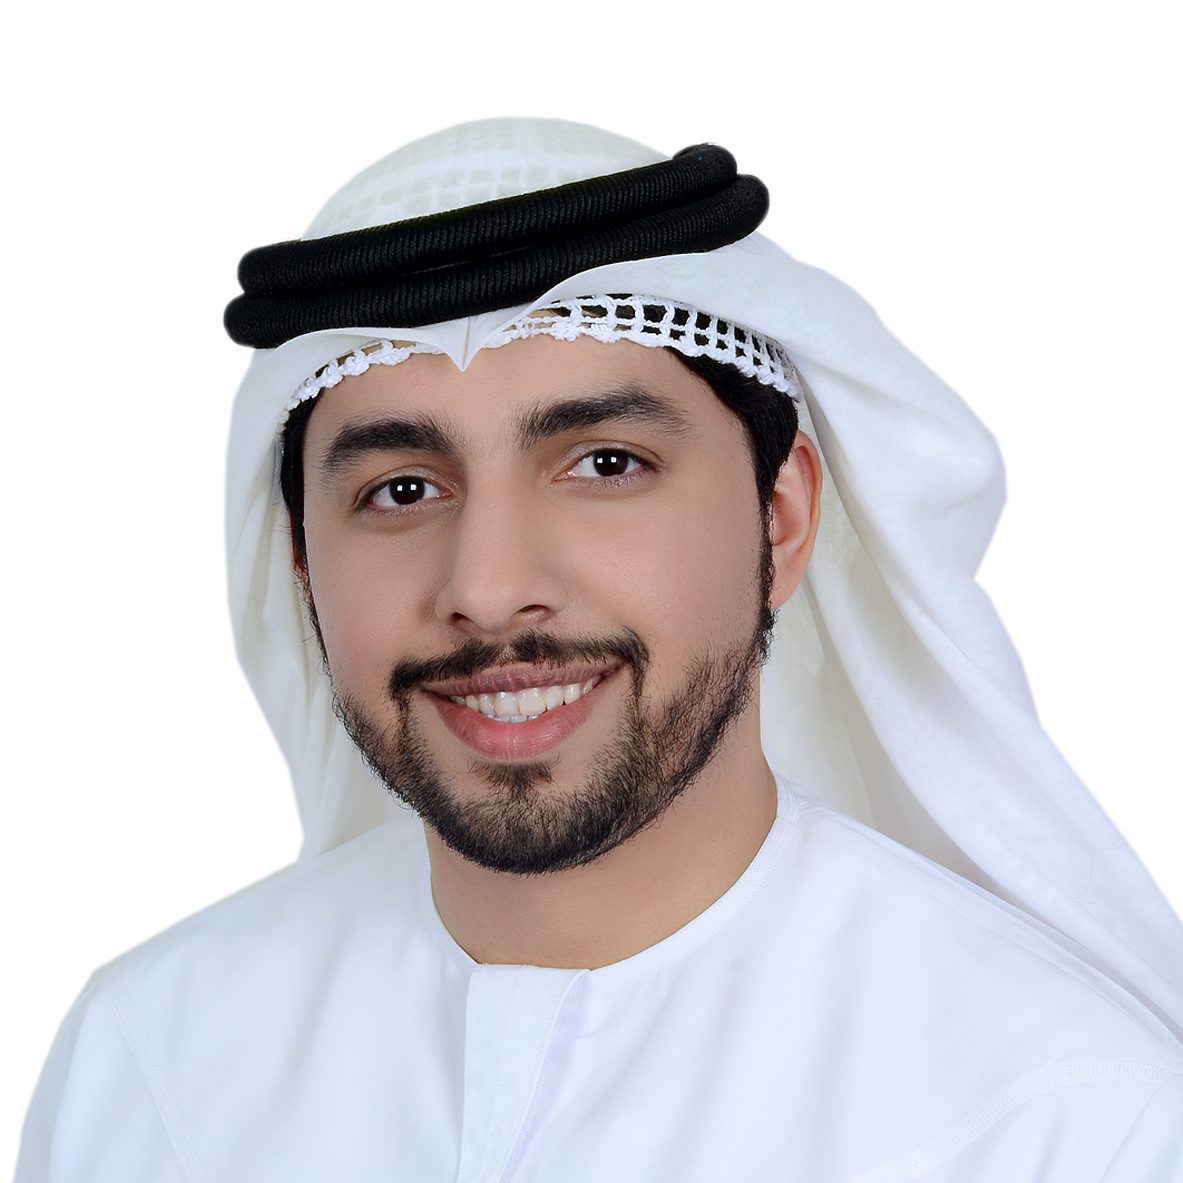 Ahmed Saeed Al Naqbi, Team Leader, Refinery Information Systems at ADNOC Refining